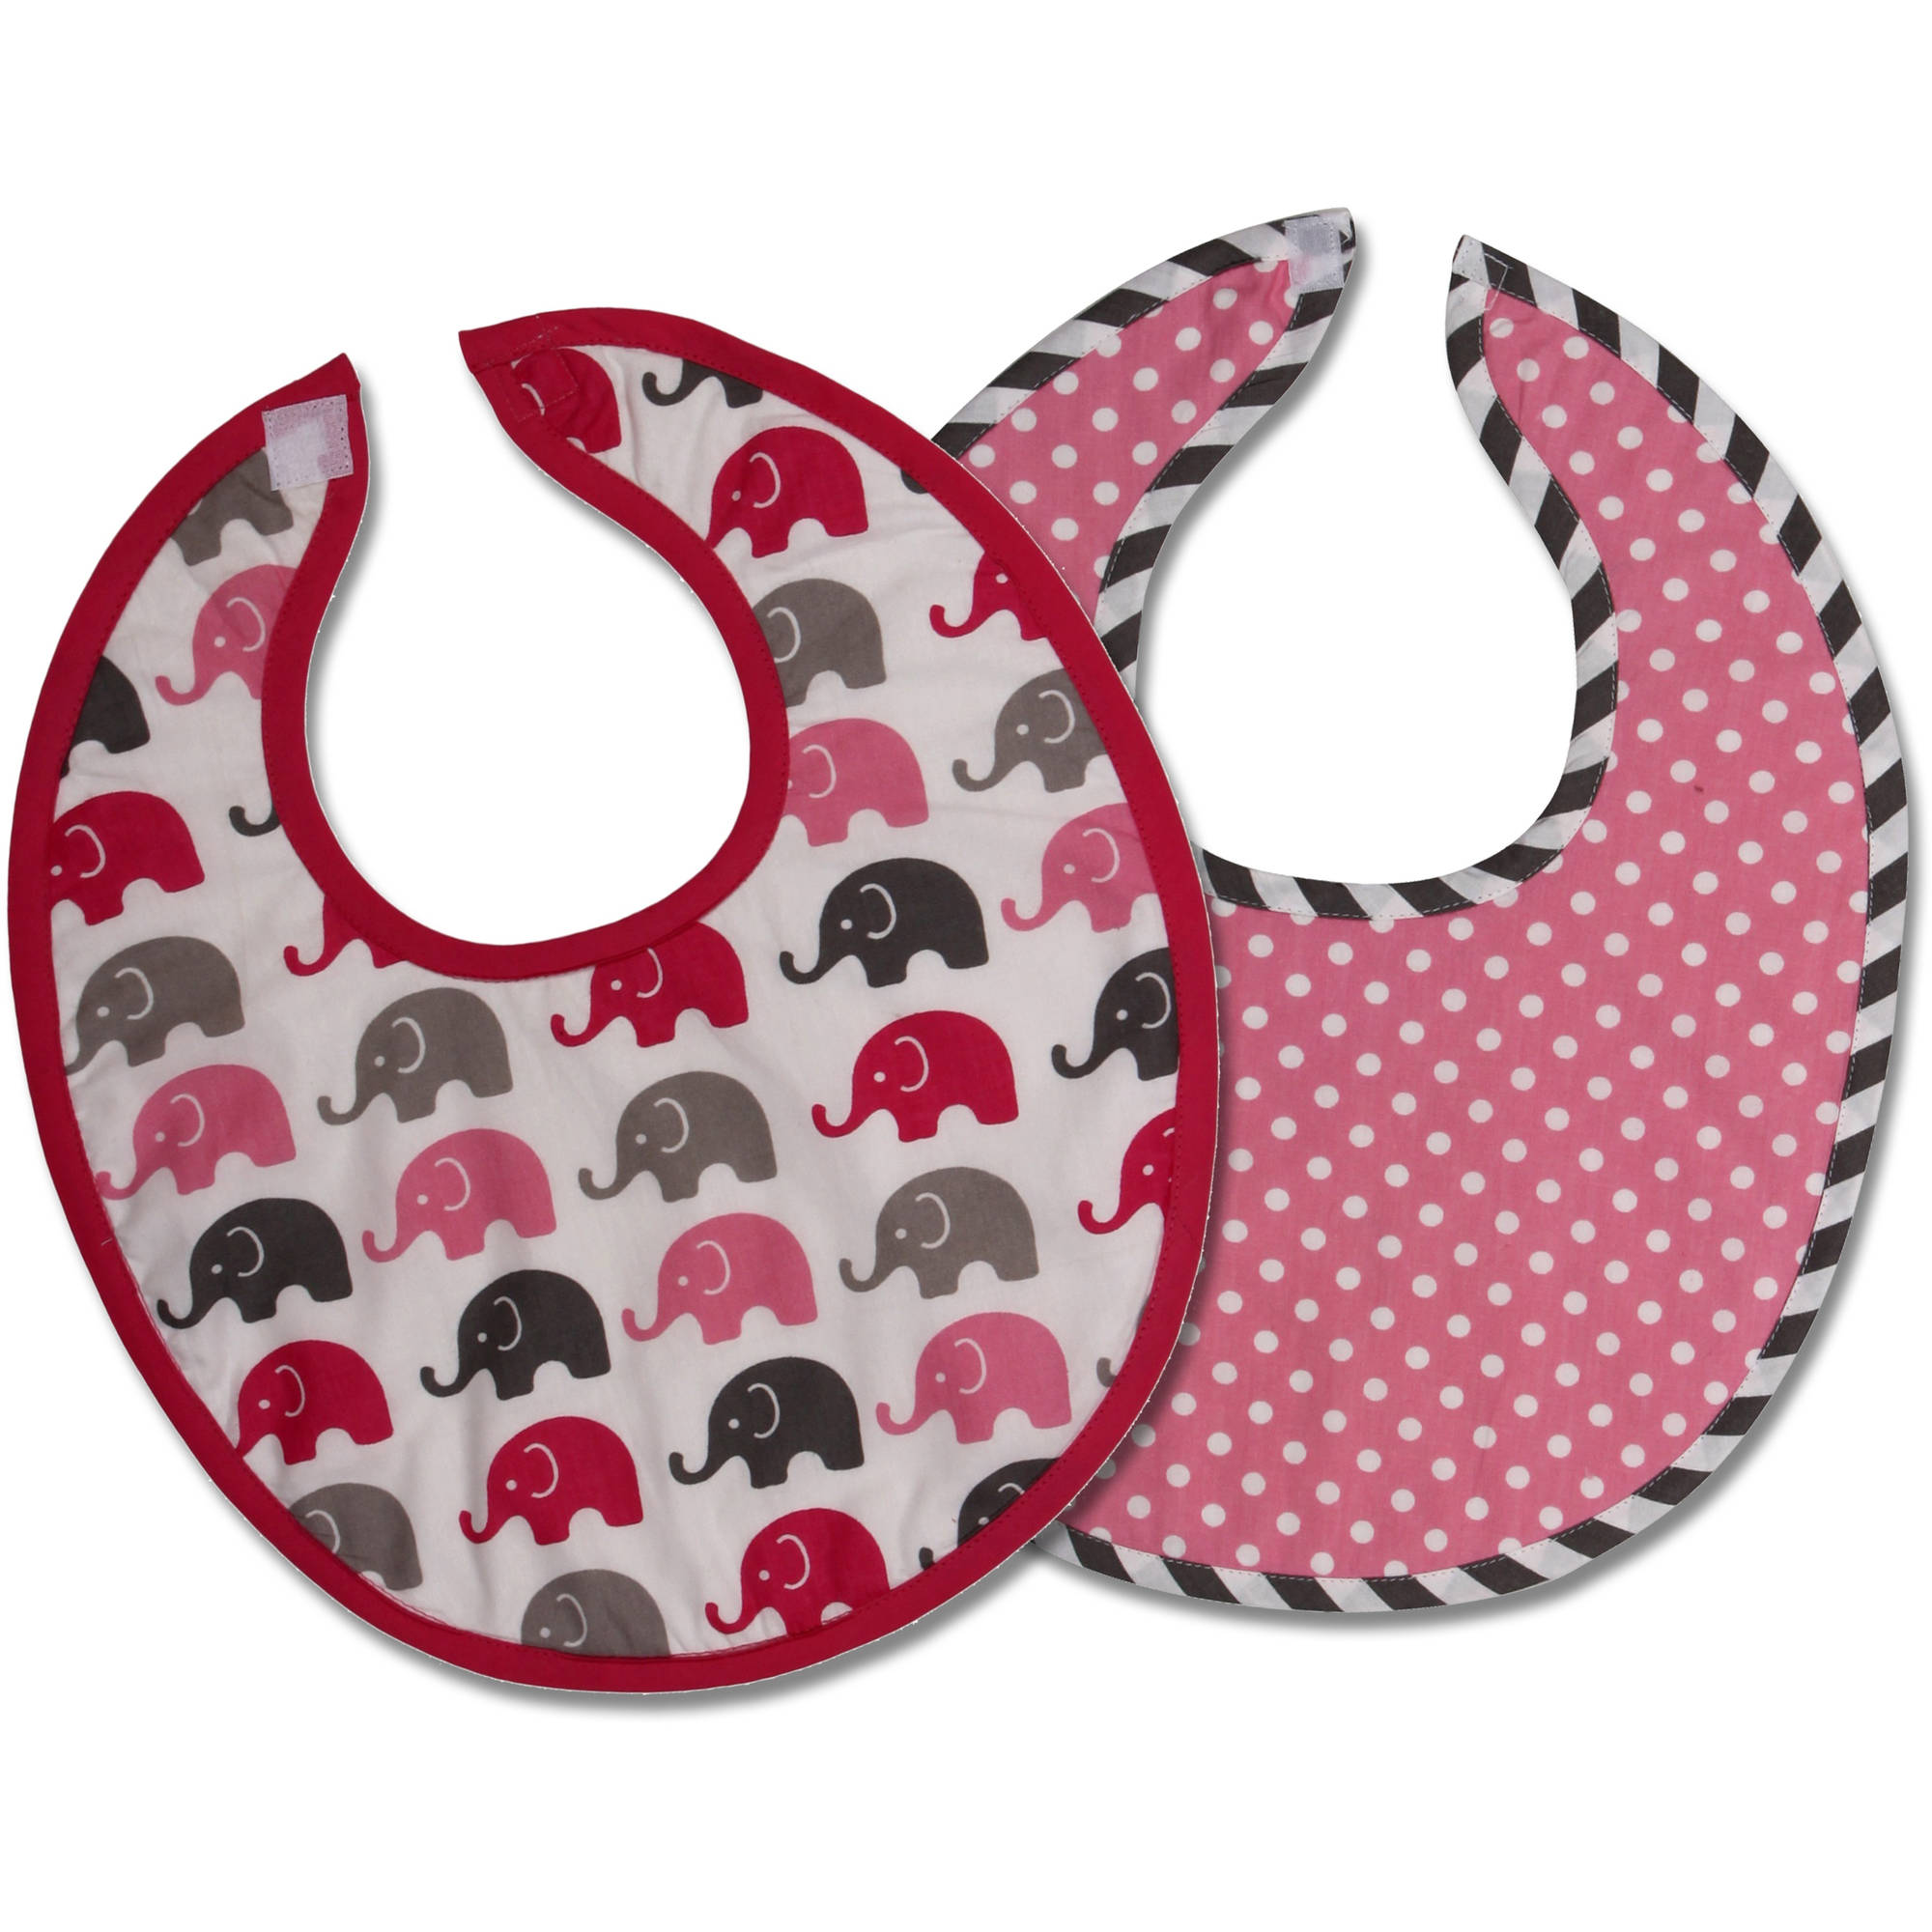 Bacati Elephants Bibs, Set of 2 (Choose Your Color)